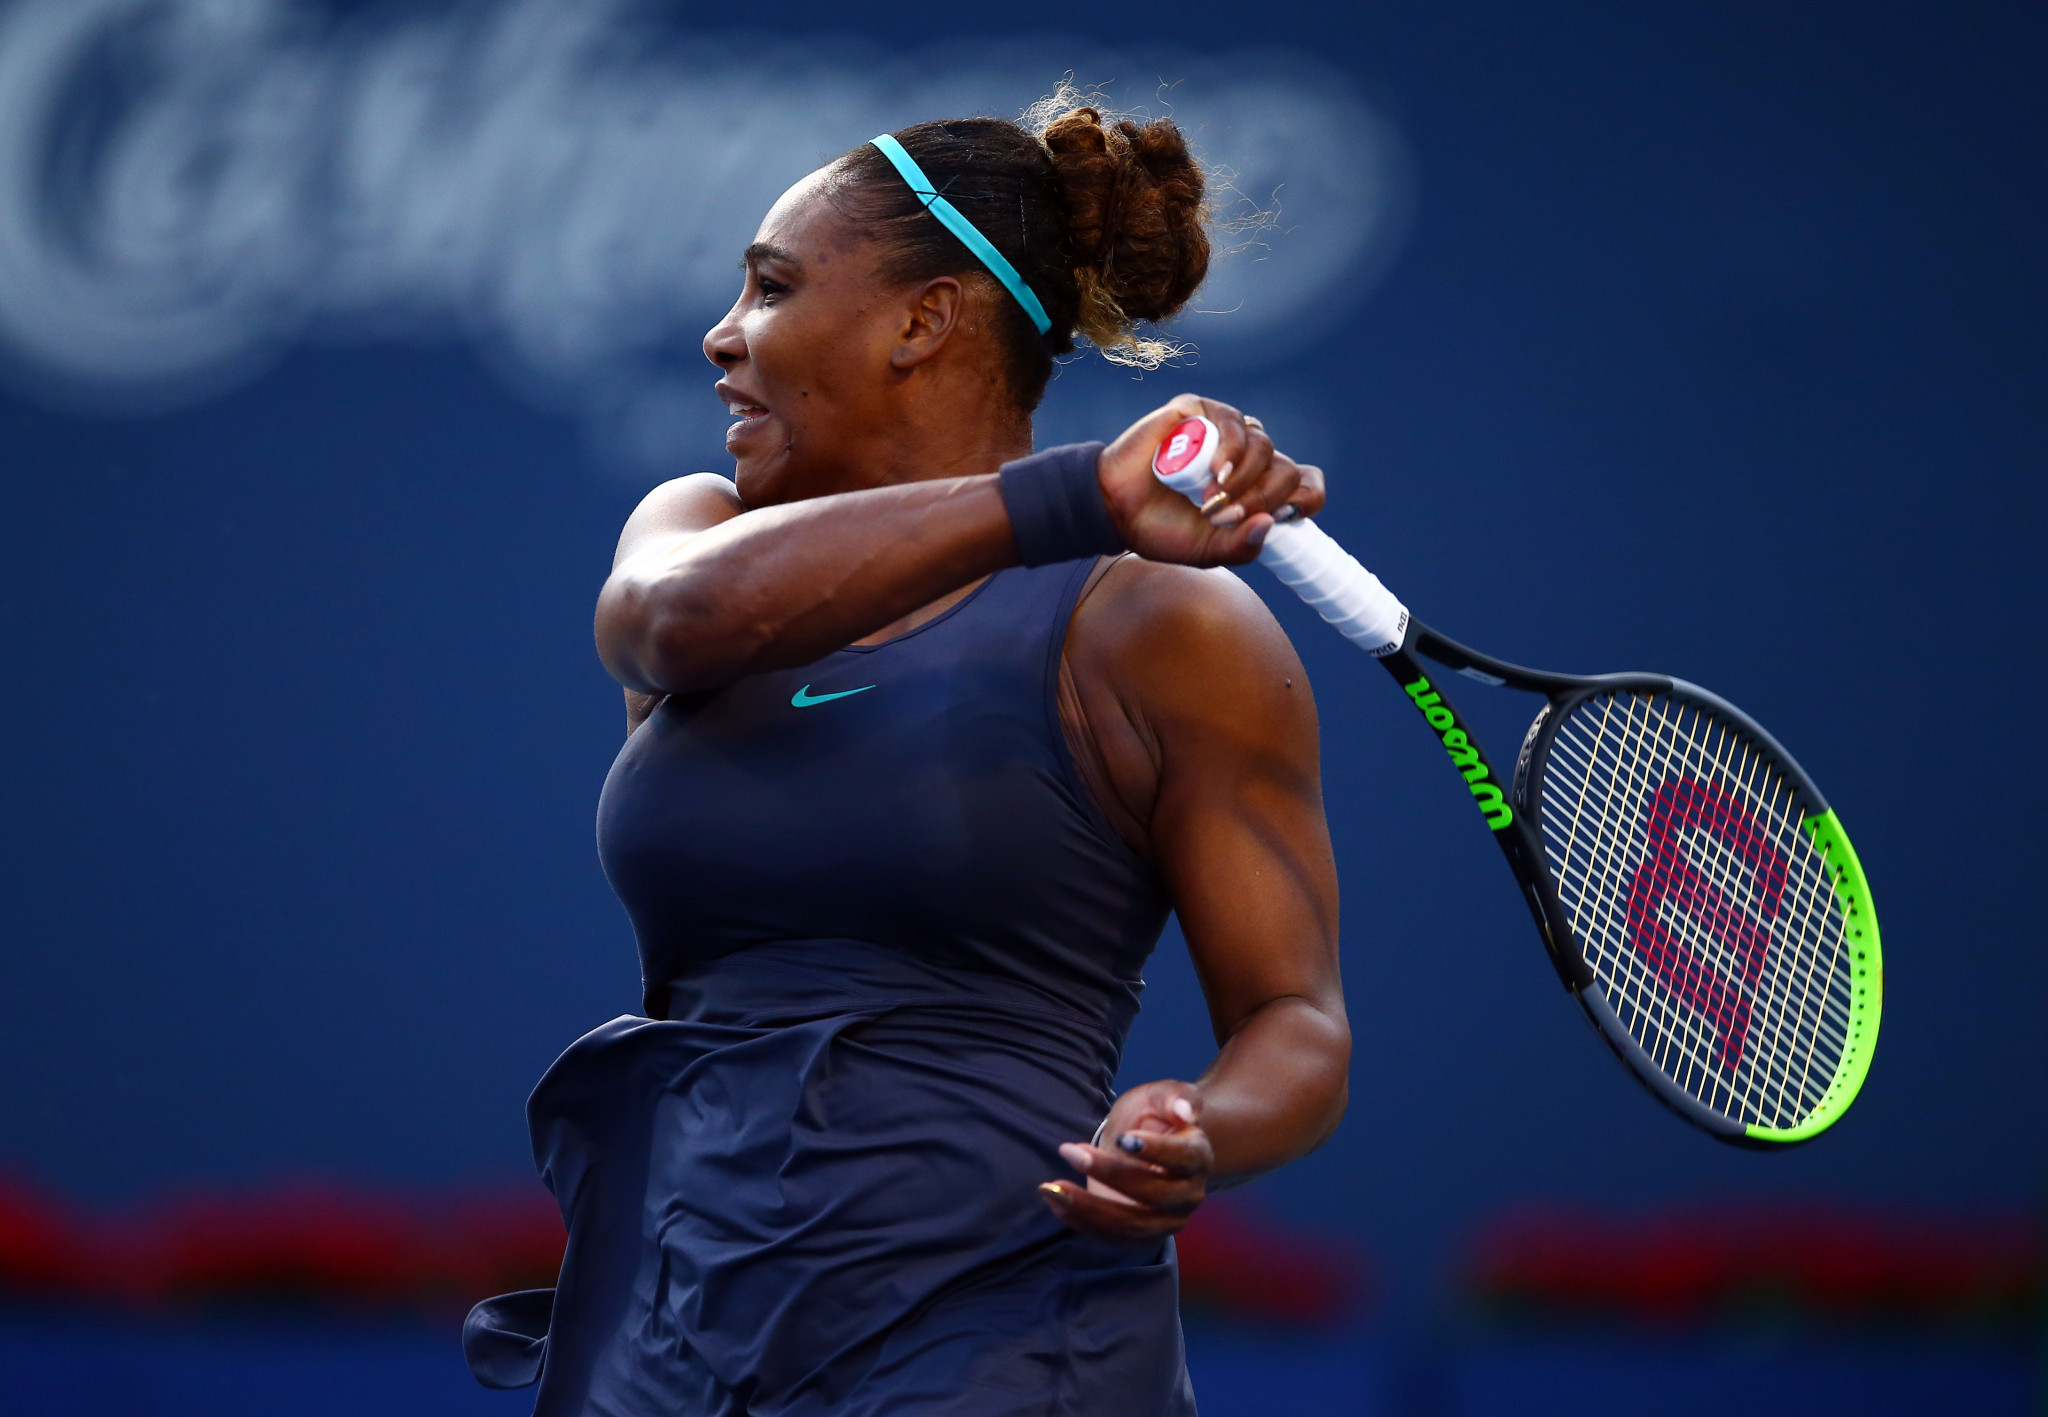 Williams sweeps aside Osaka to reach Rogers Cup semi-finals